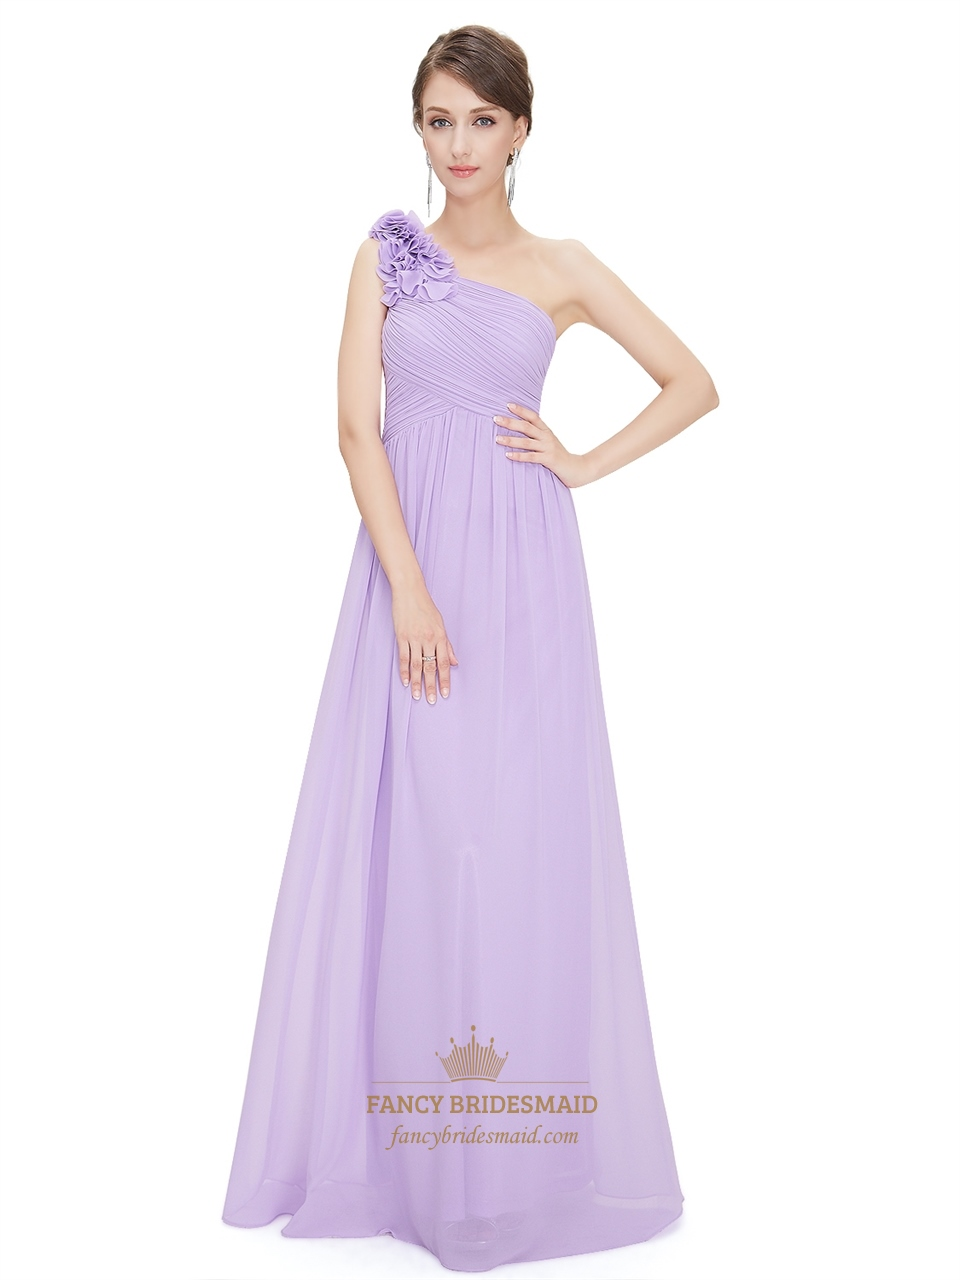 Lilac chiffon one shoulder bridesmaid dress with flower shoulder lilac chiffon one shoulder bridesmaid dress with flower shoulder strap ombrellifo Gallery